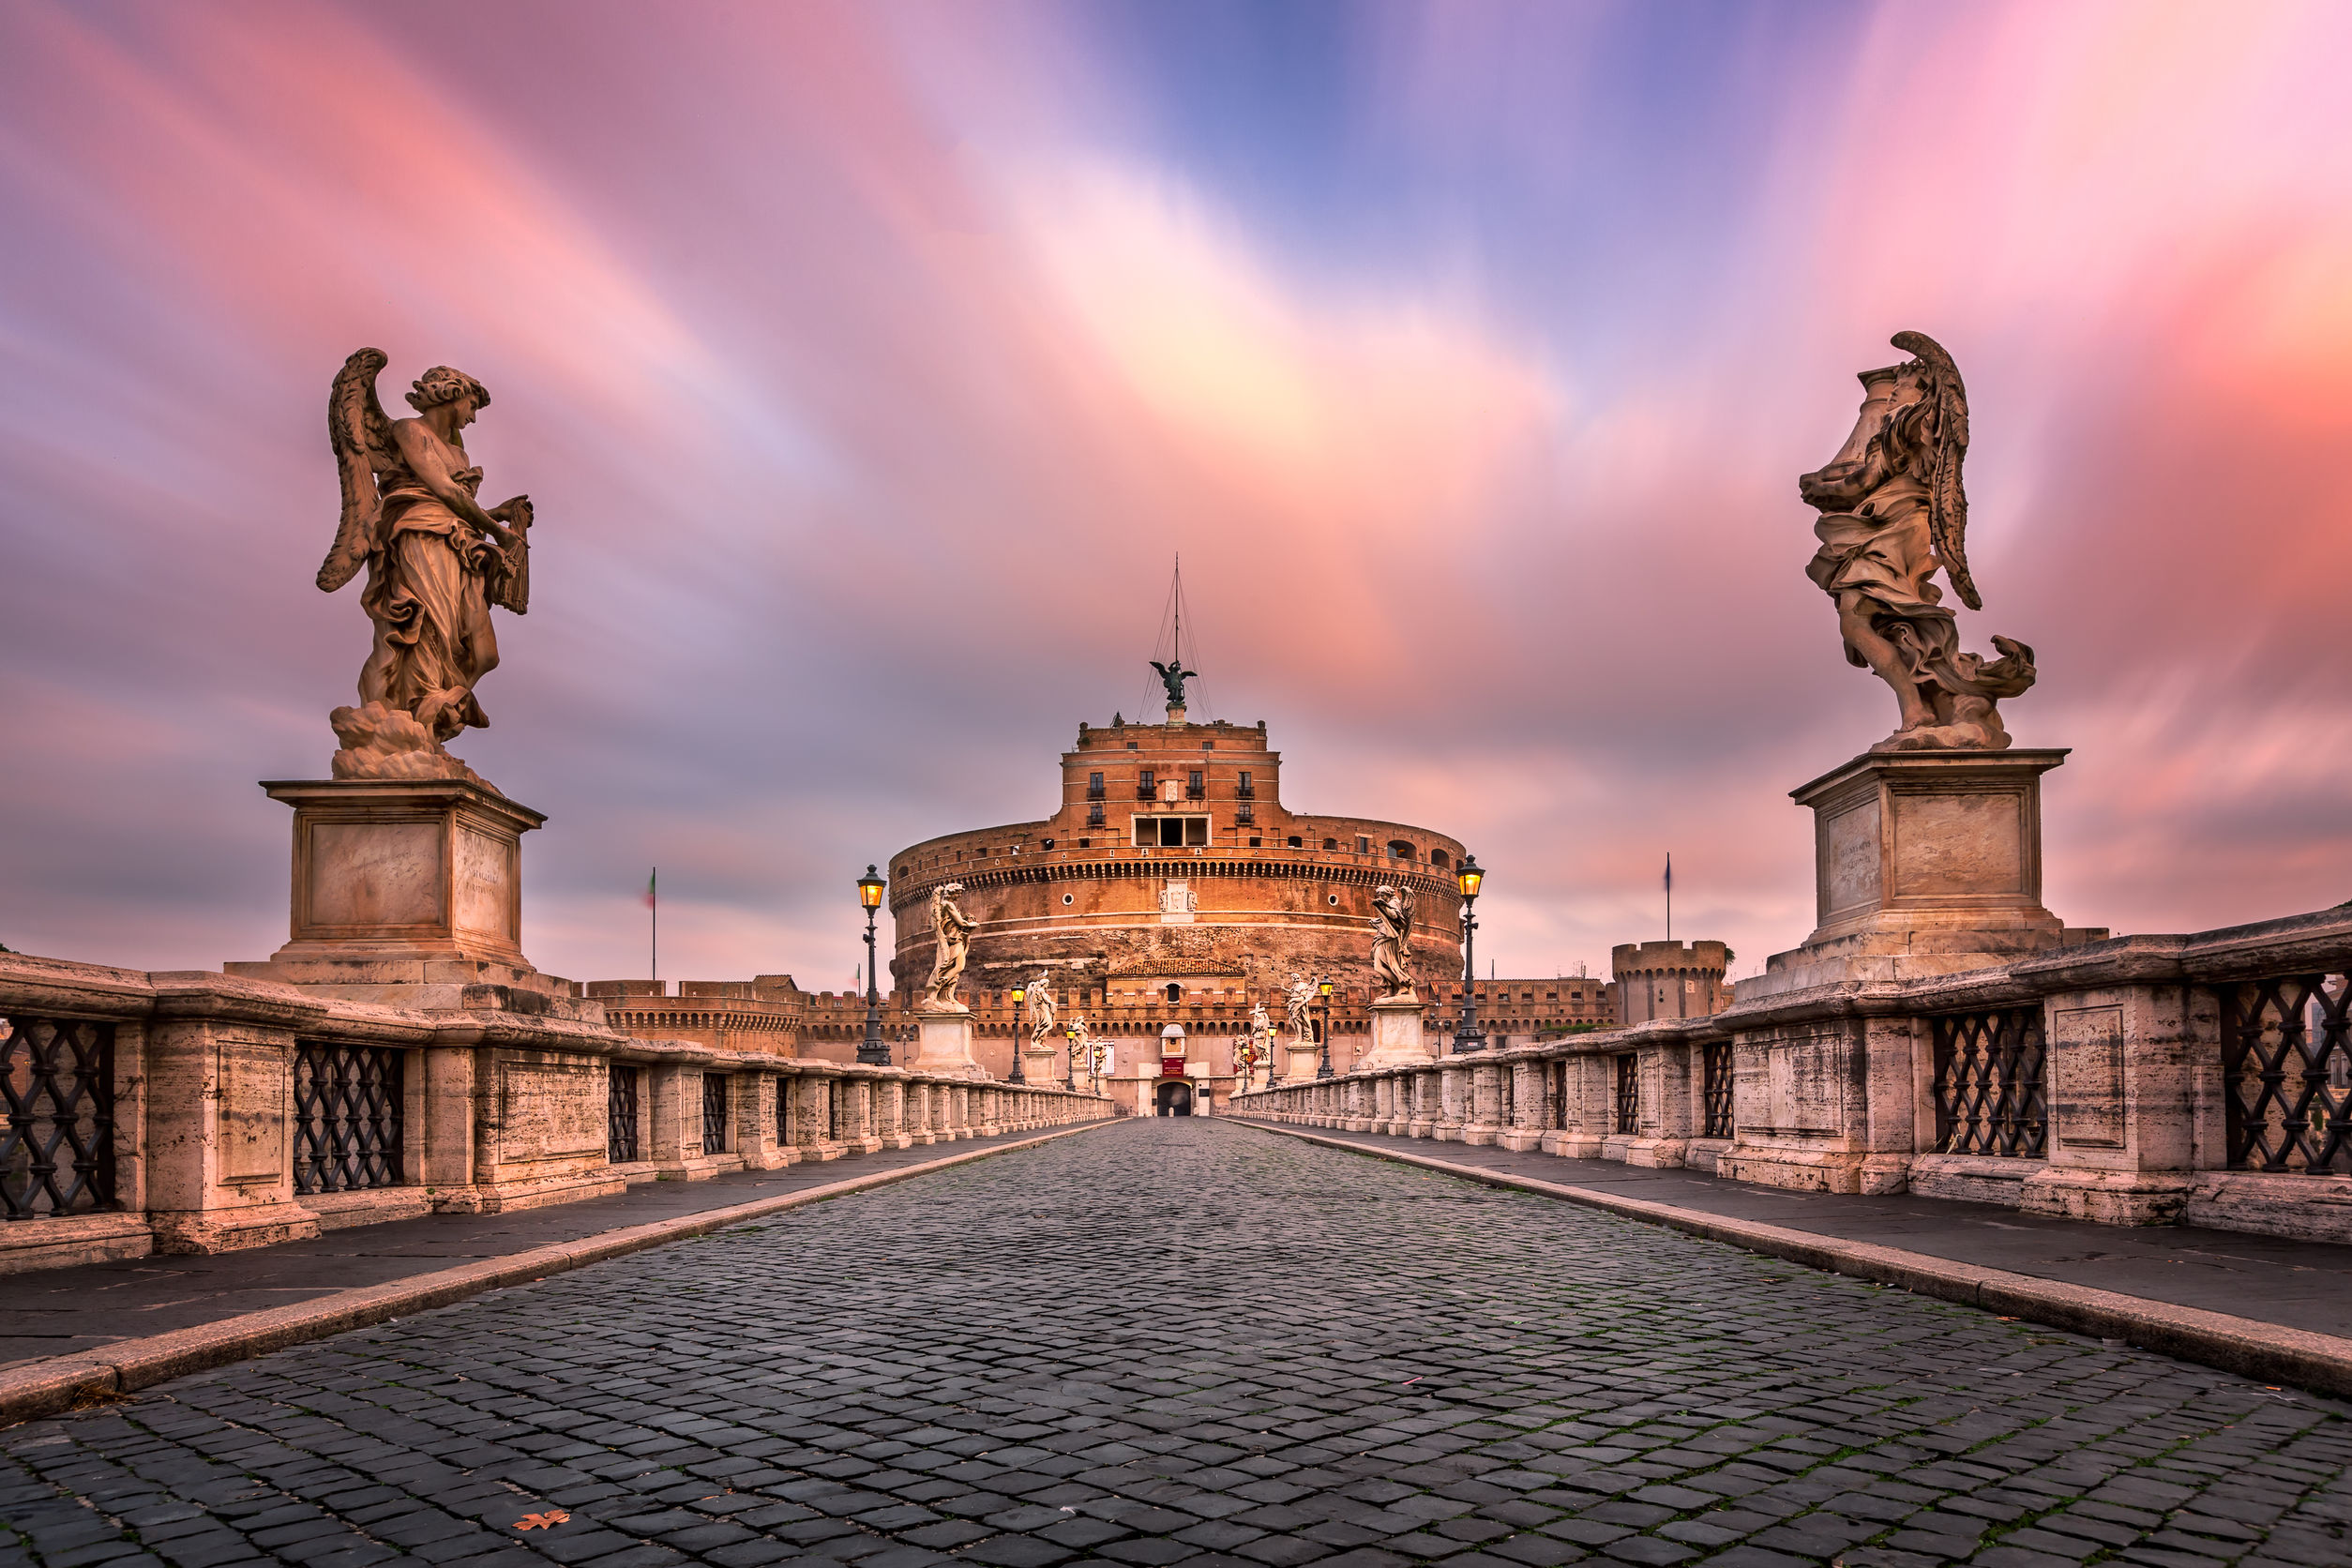 Castel Sant'Angelo, Rome in Italy